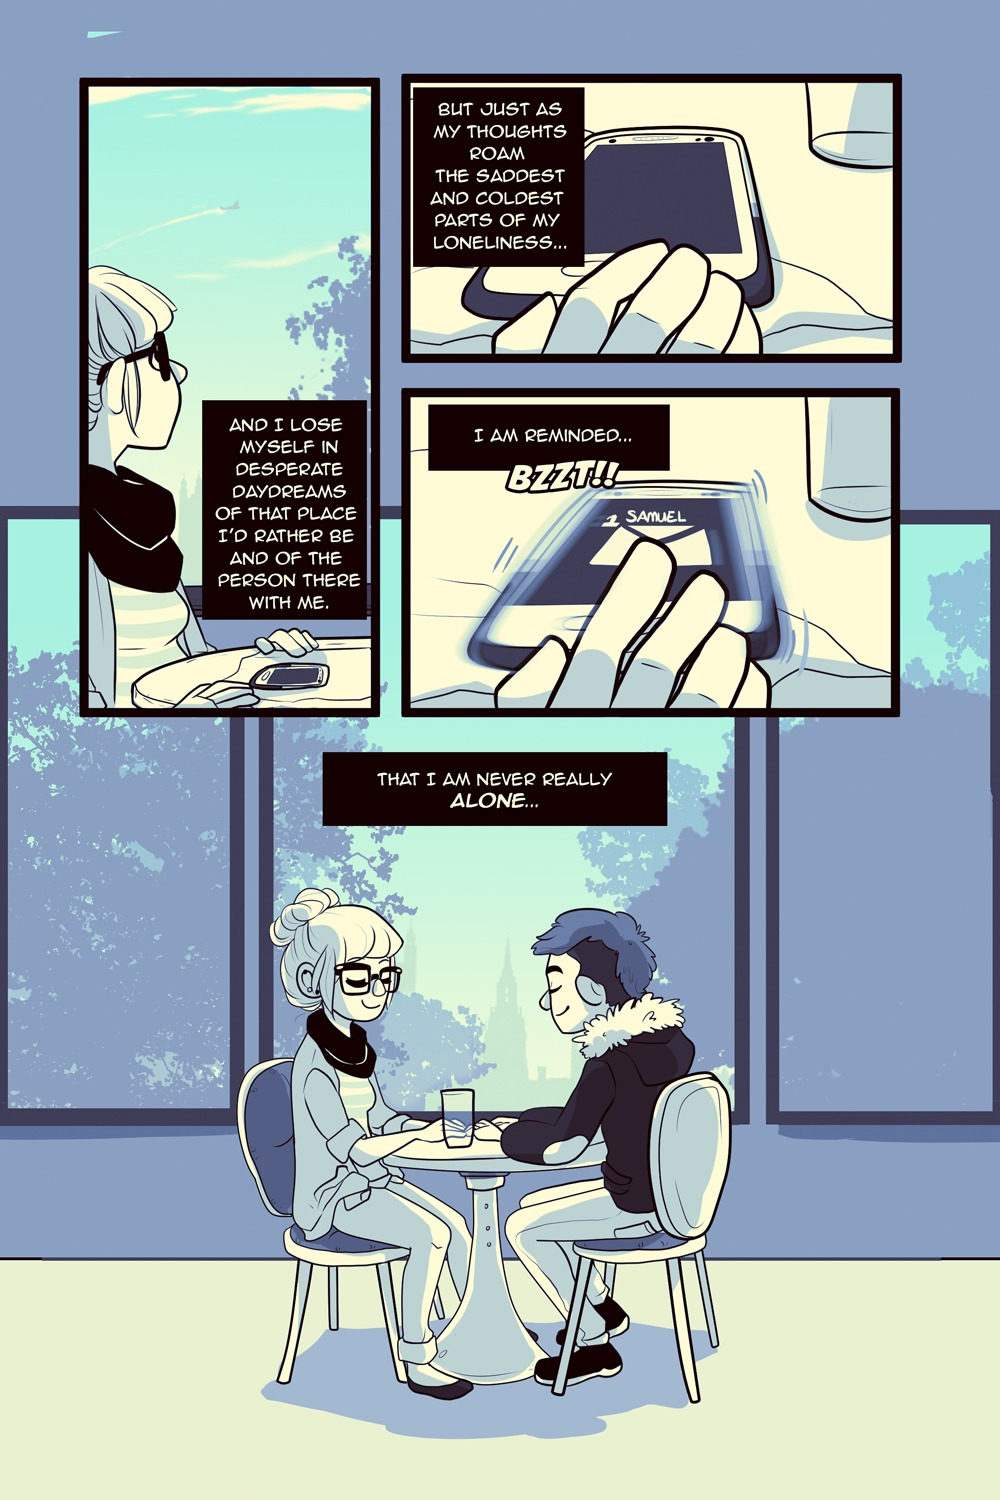 Image of: Romantic Cute Long Distance Relationship Quotes Like Success Clipart 4u Pictures Of Long Distance Relationship Cartoon Tumblr rockcafe